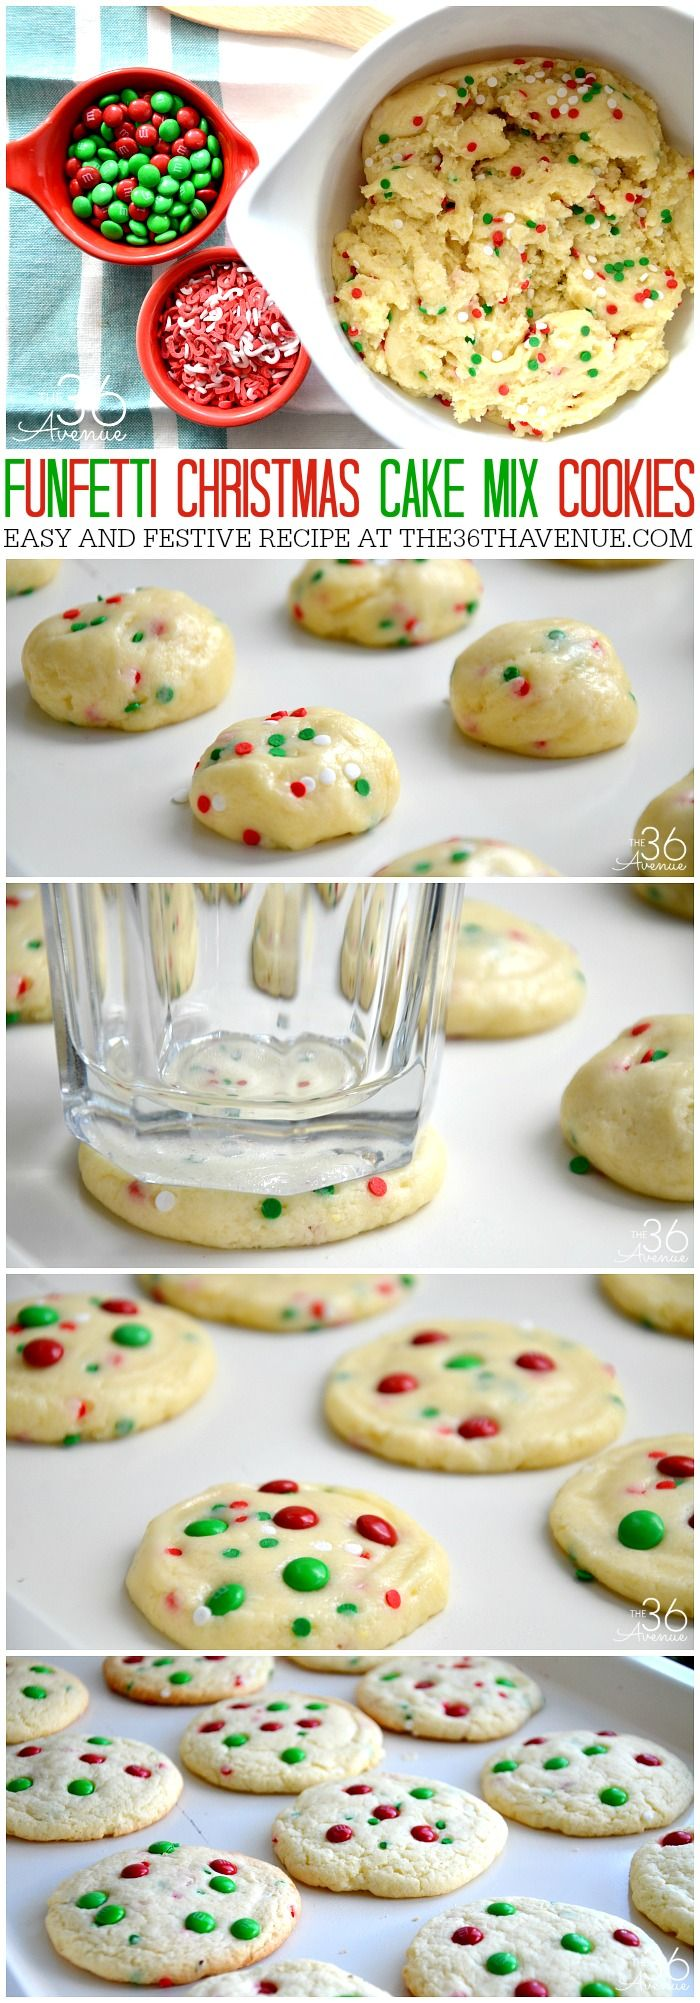 Christmas Cookie Recipe at the36thavenue.com